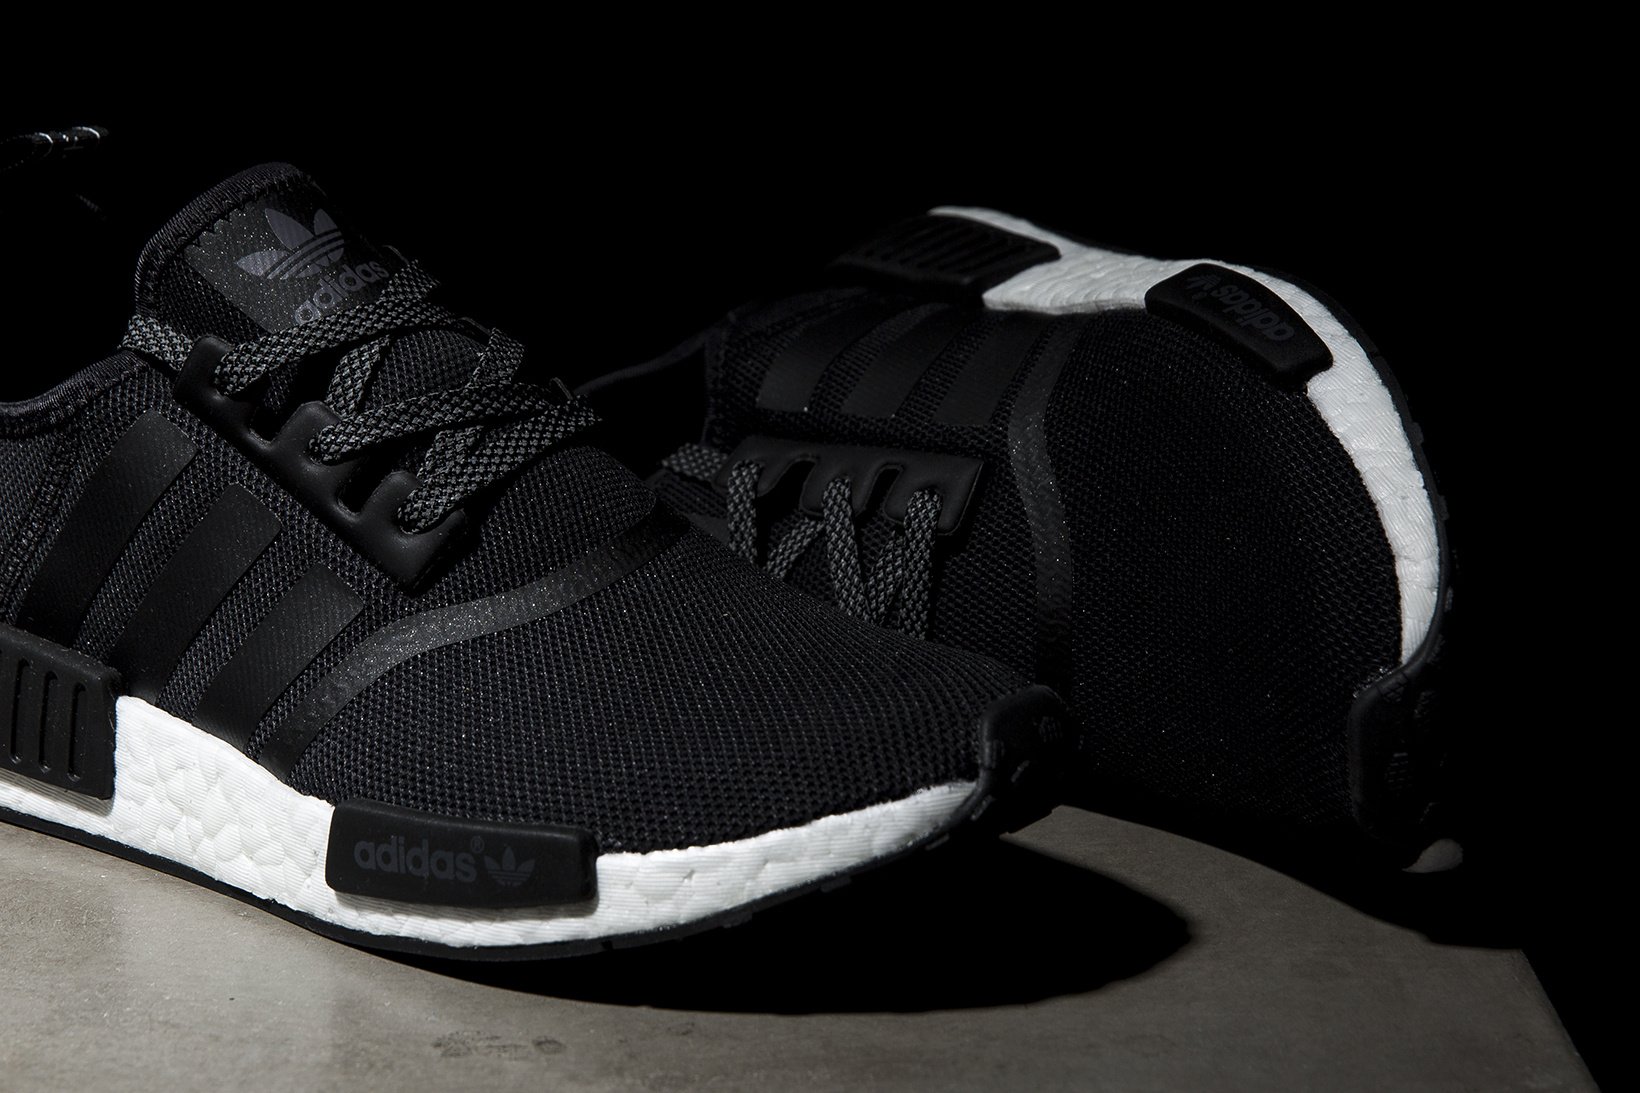 adidas-nmd-r1-core-black-white-reflective-4